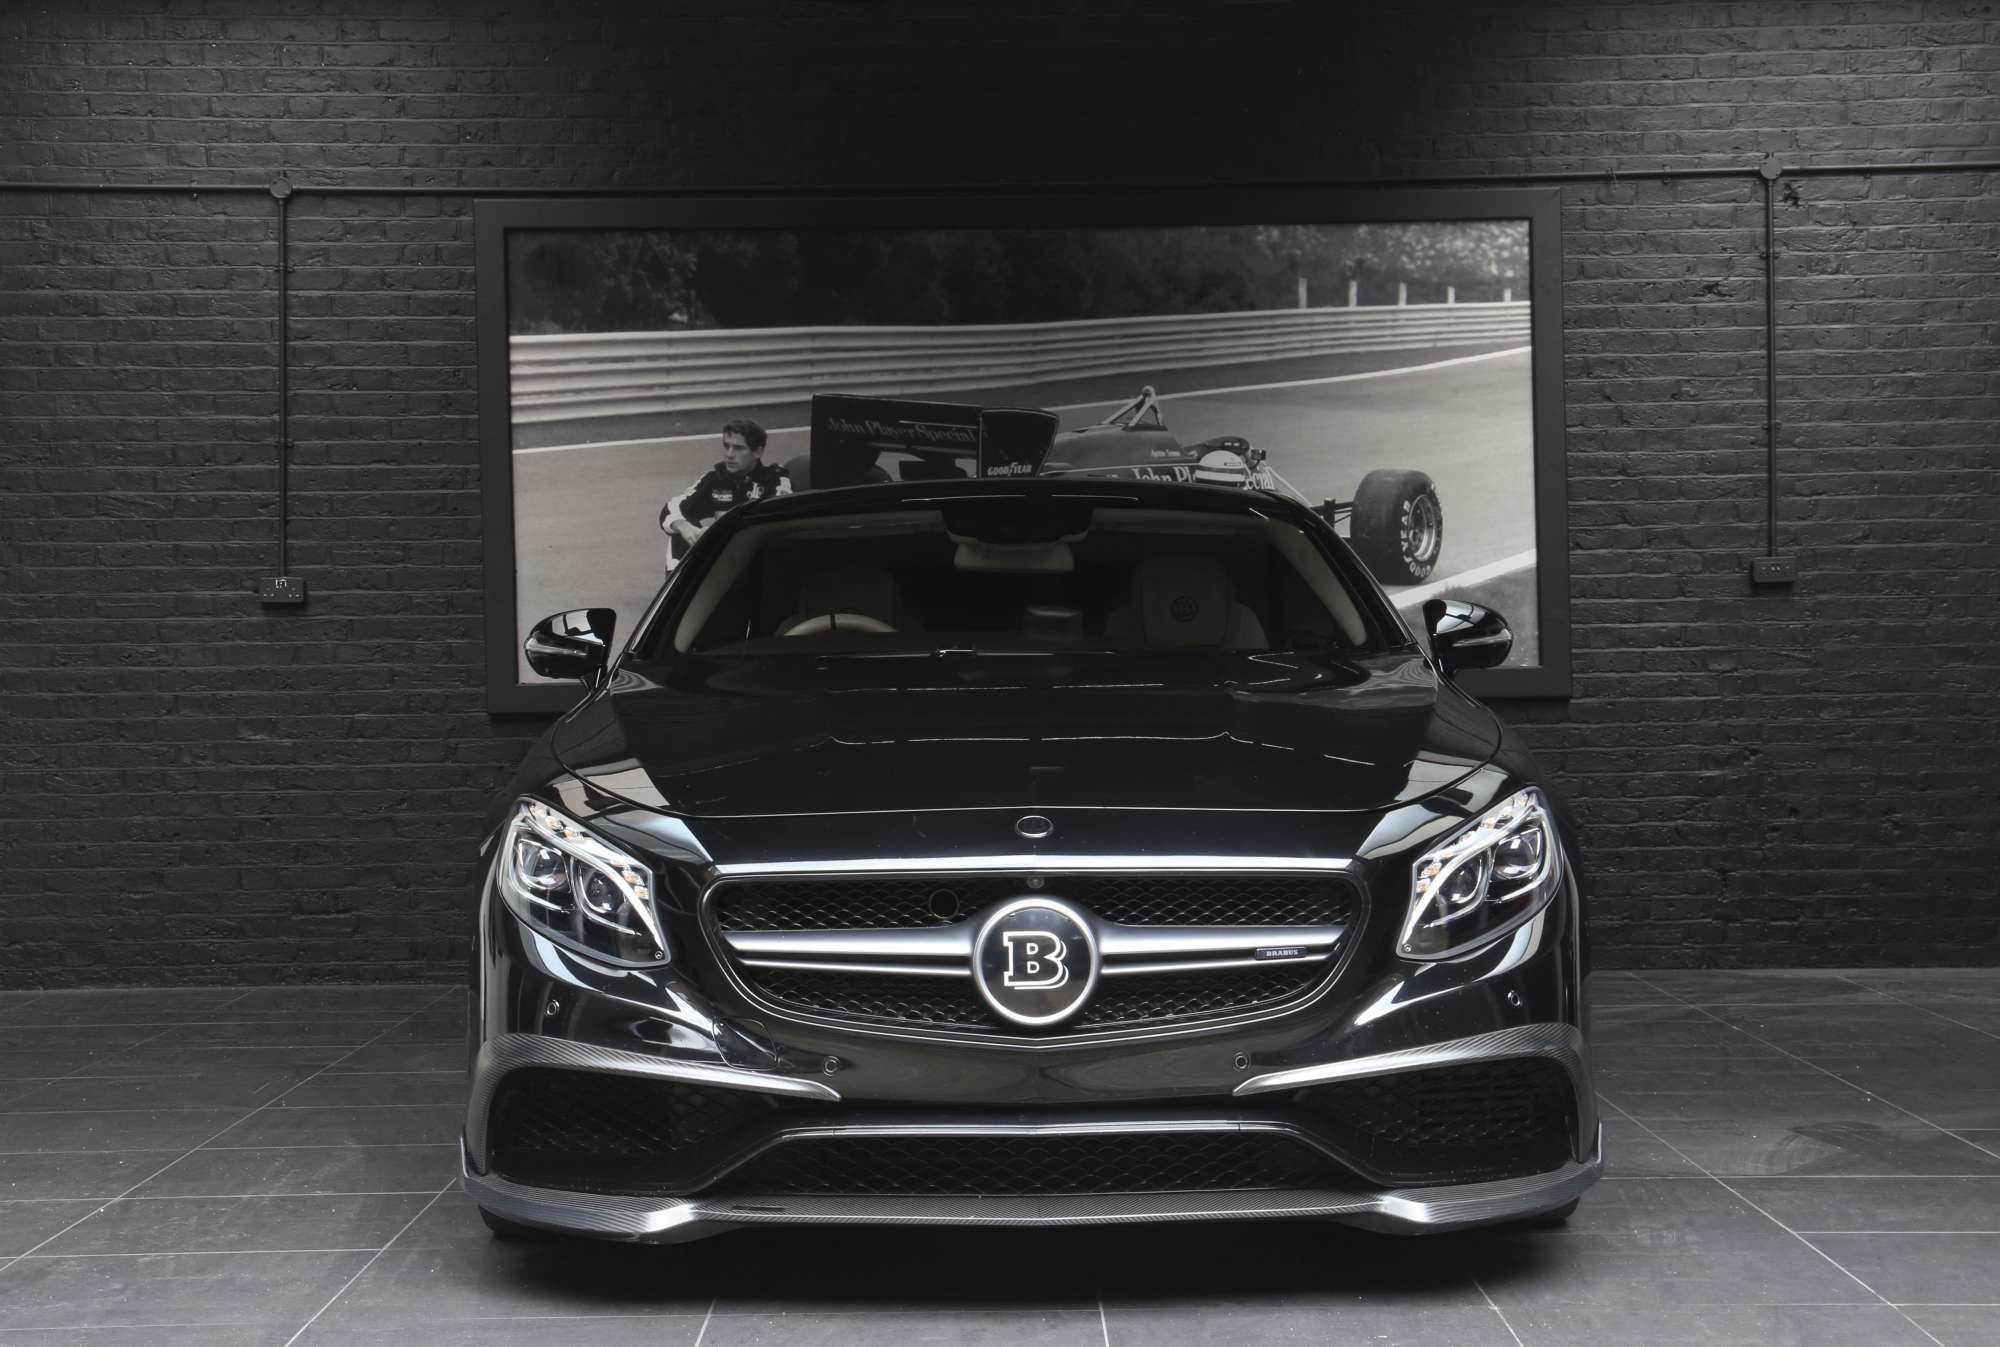 Rhd mercedes benz brabus s63 coupe pegasus auto house for Mercedes benz tysons hours